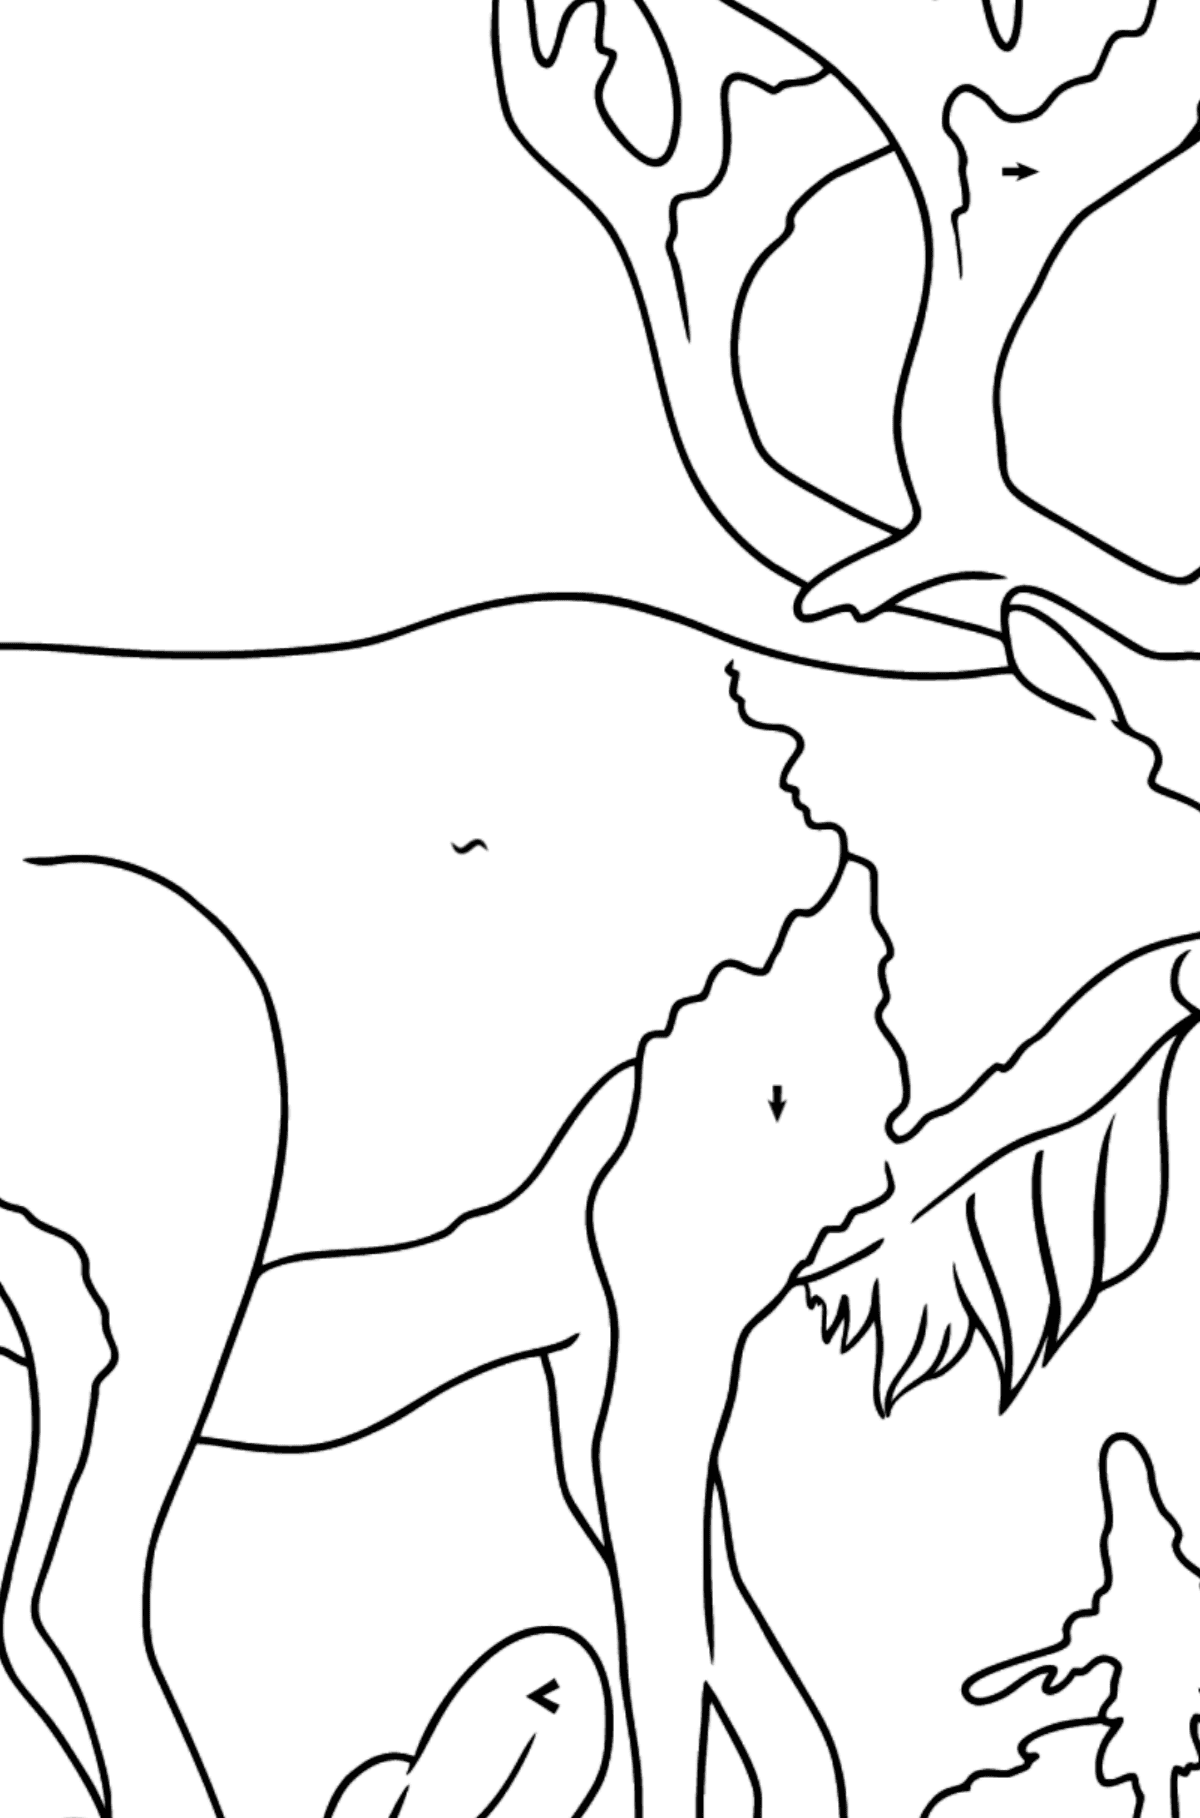 Coloring Page - A Deer with Beautiful Antlers - Coloring by Symbols for Kids